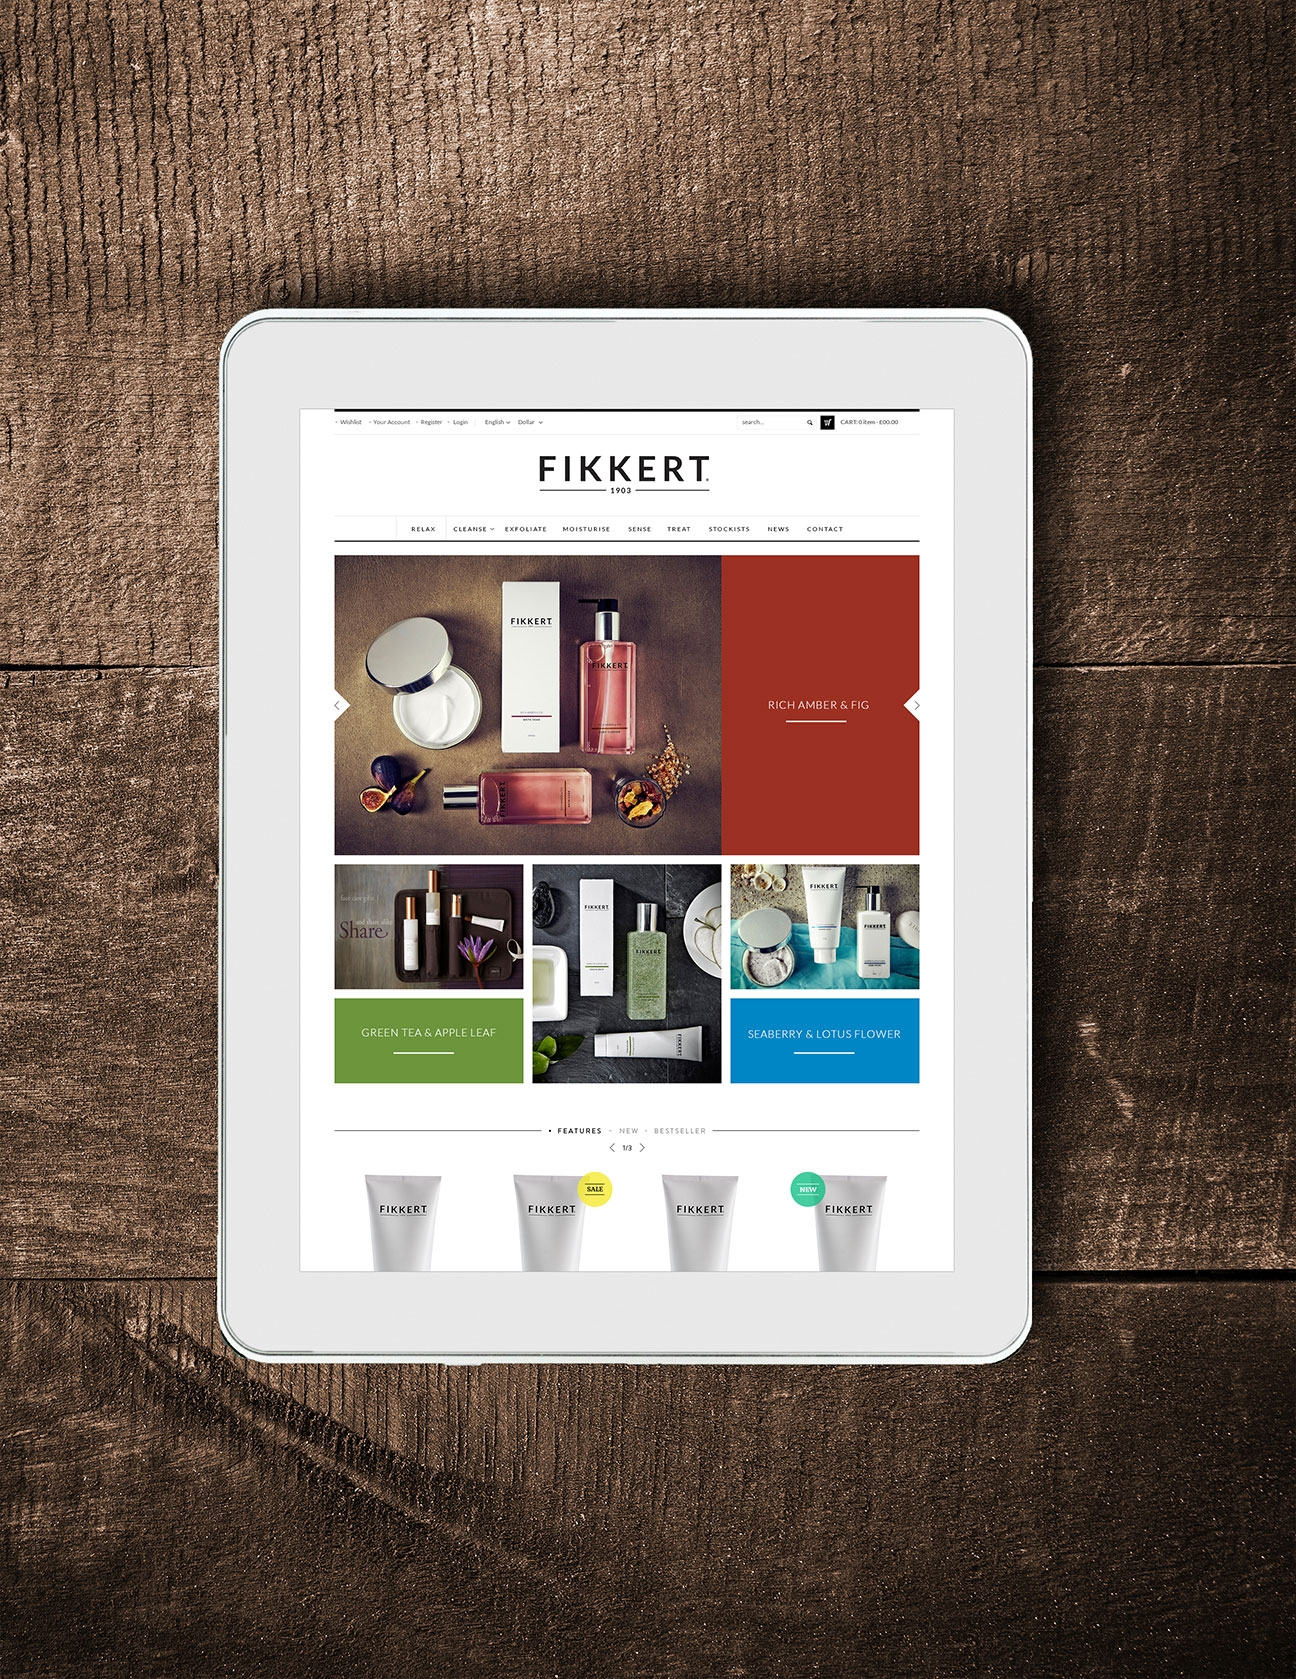 Fikkerts 1903 Website